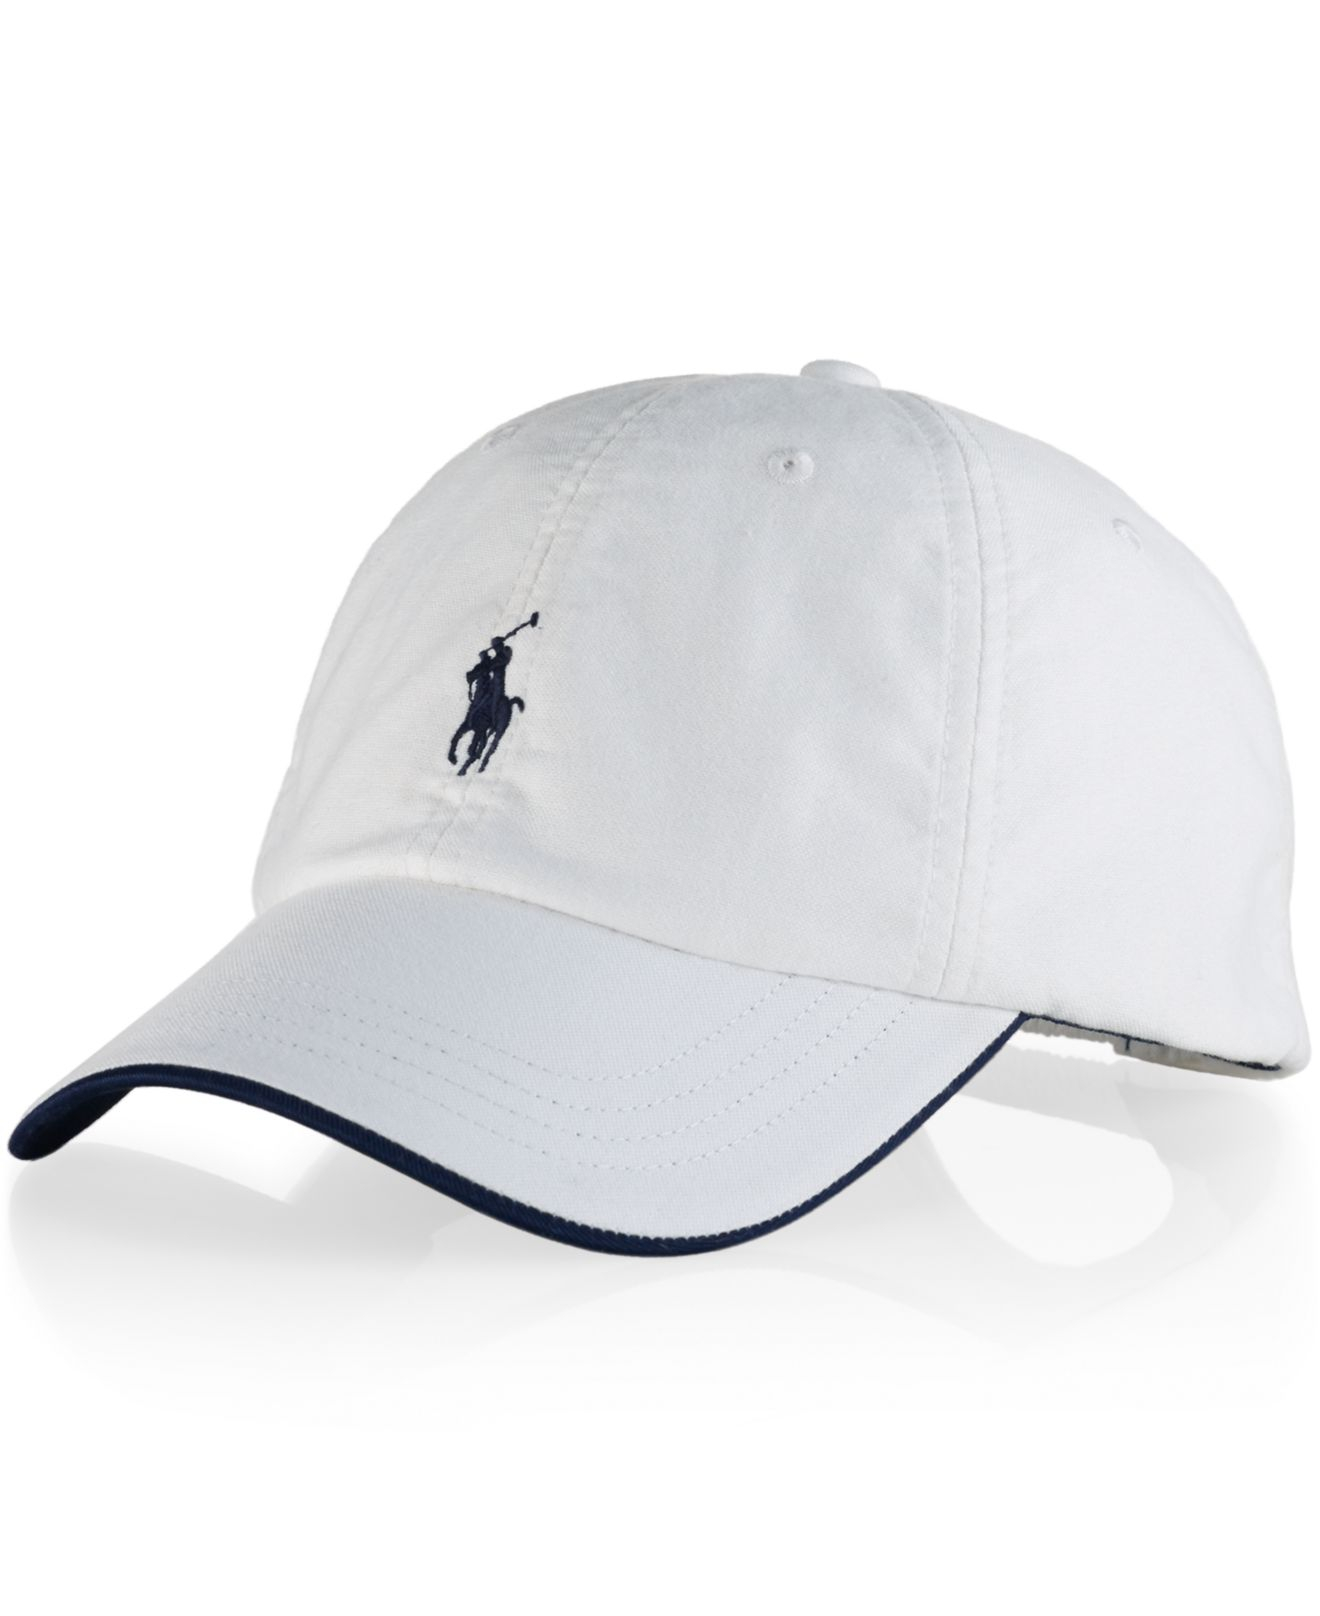 polo ralph lauren oxford heritage cap in white for men lyst. Black Bedroom Furniture Sets. Home Design Ideas